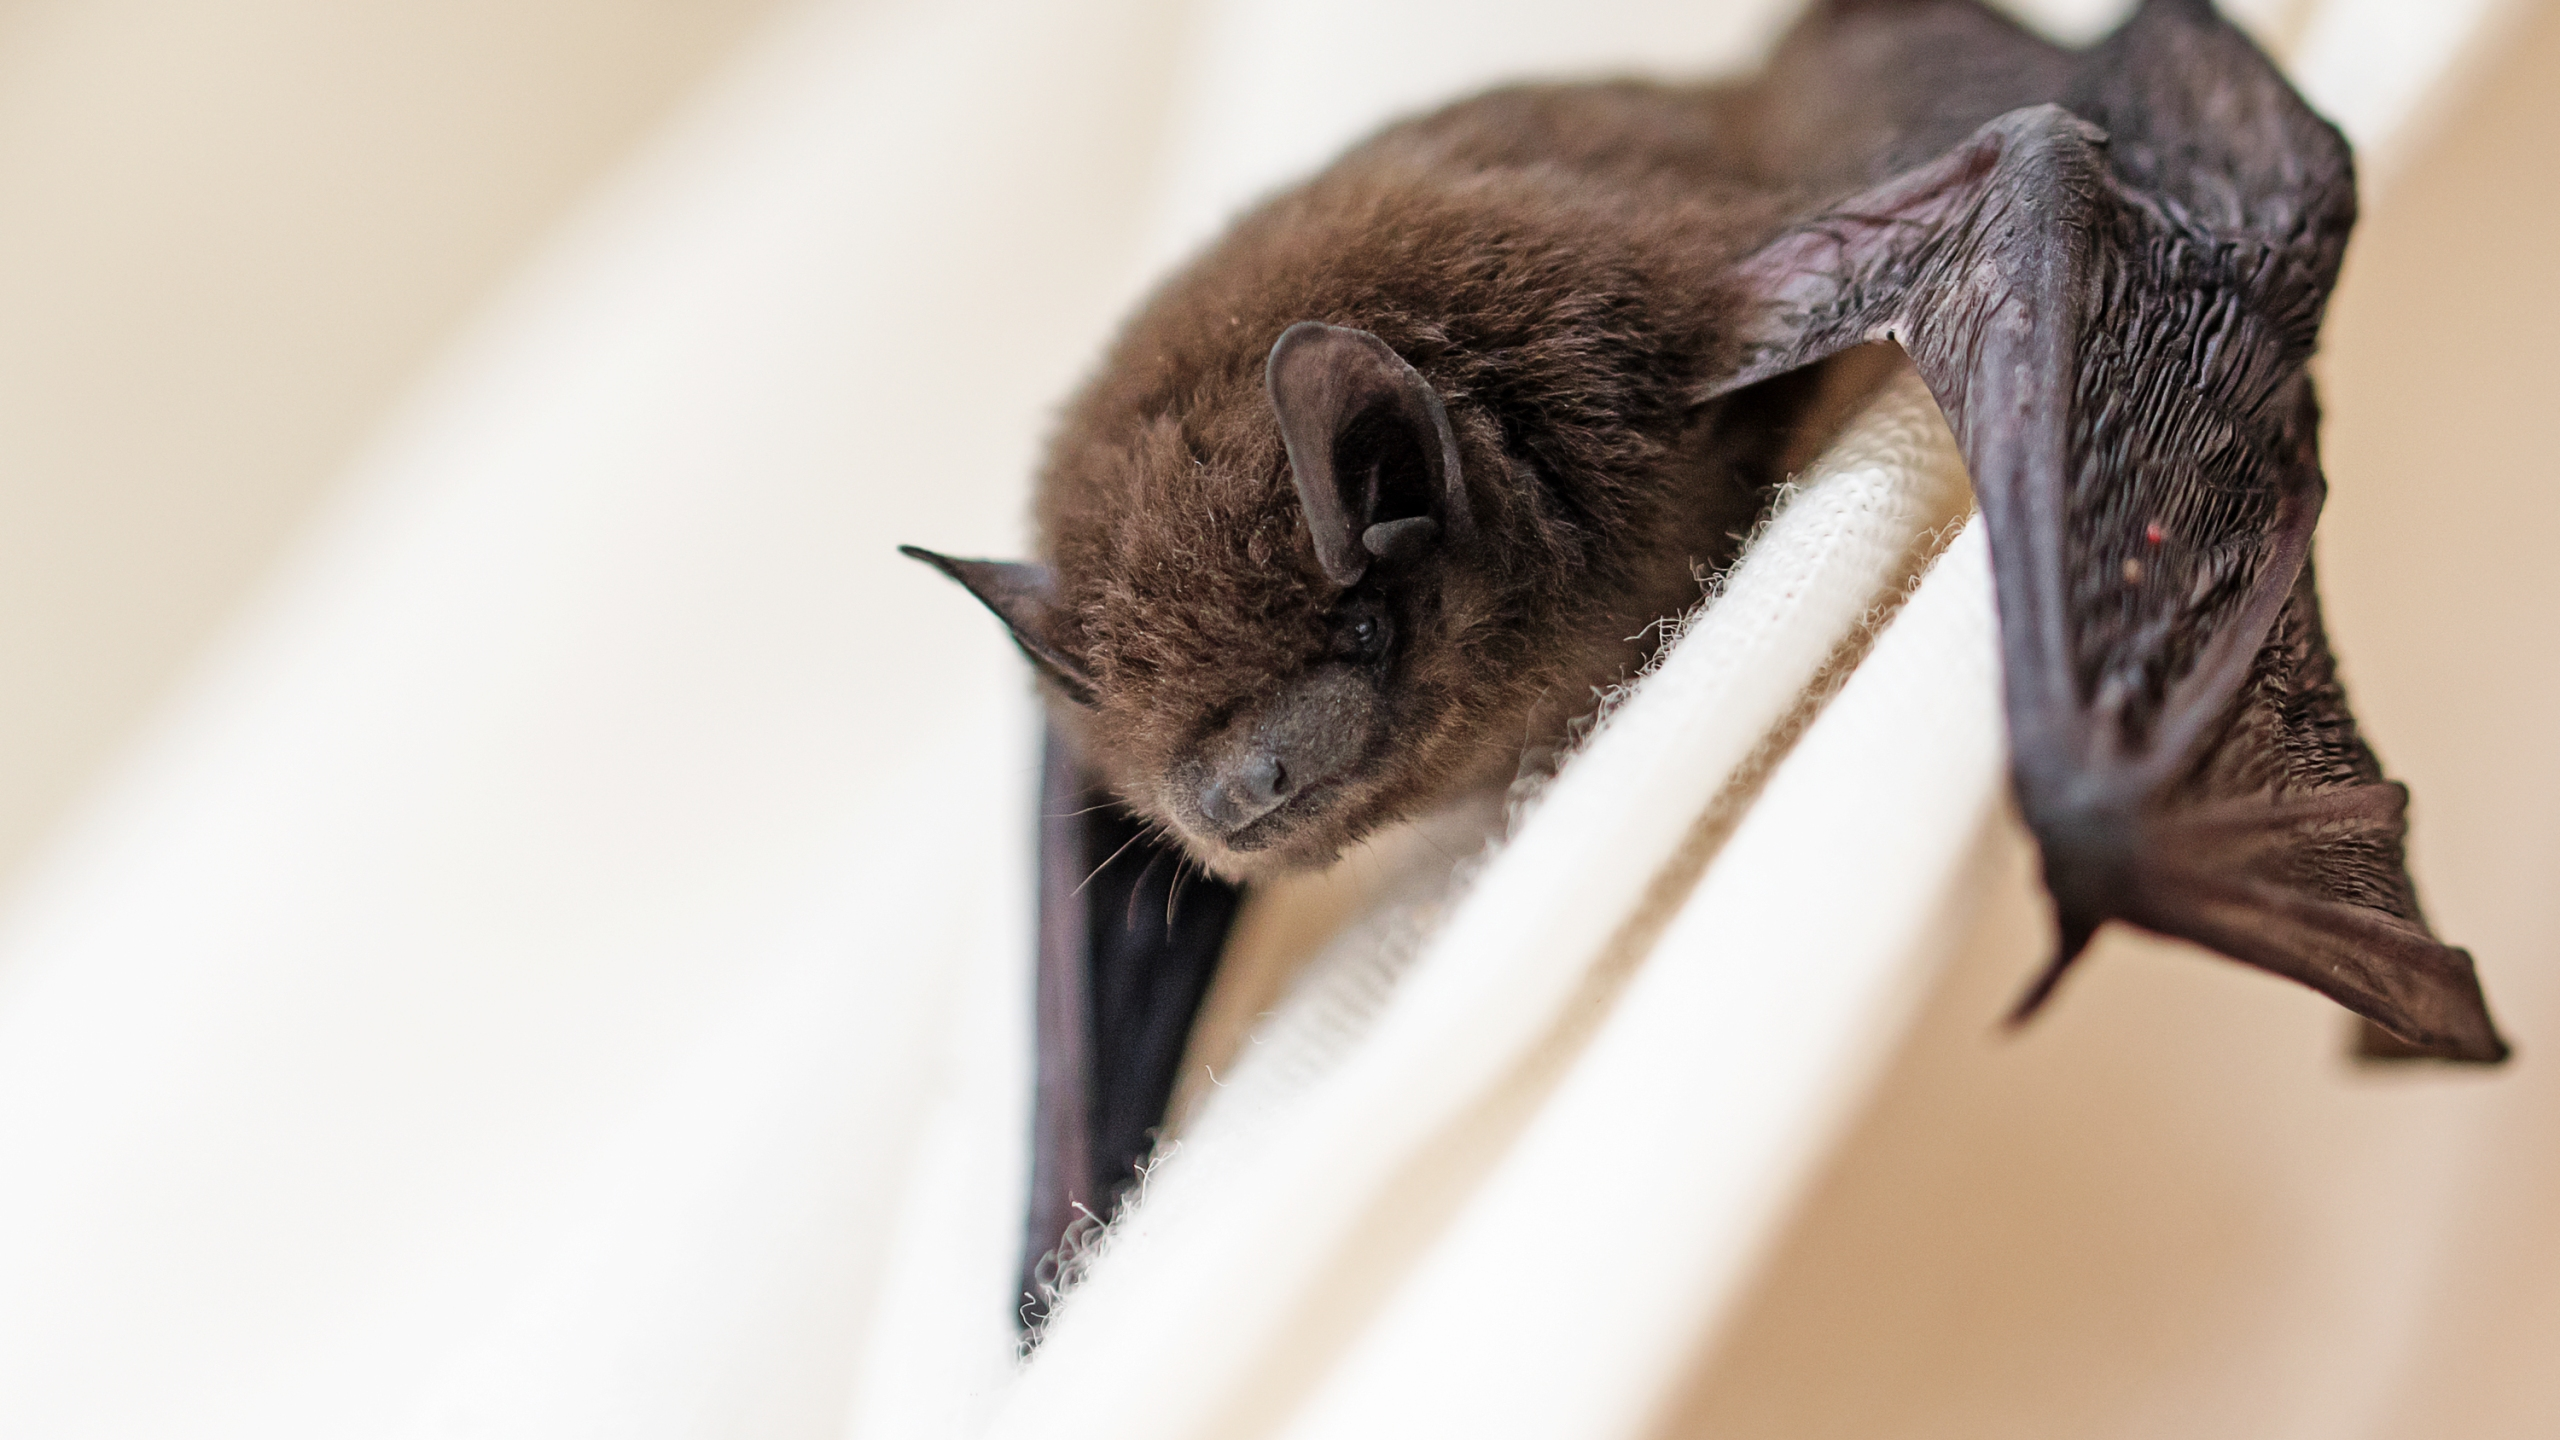 In this file photo, a small bat has strayed into the room and climbs on a white curtain. (iStock/Getty Images Plus)